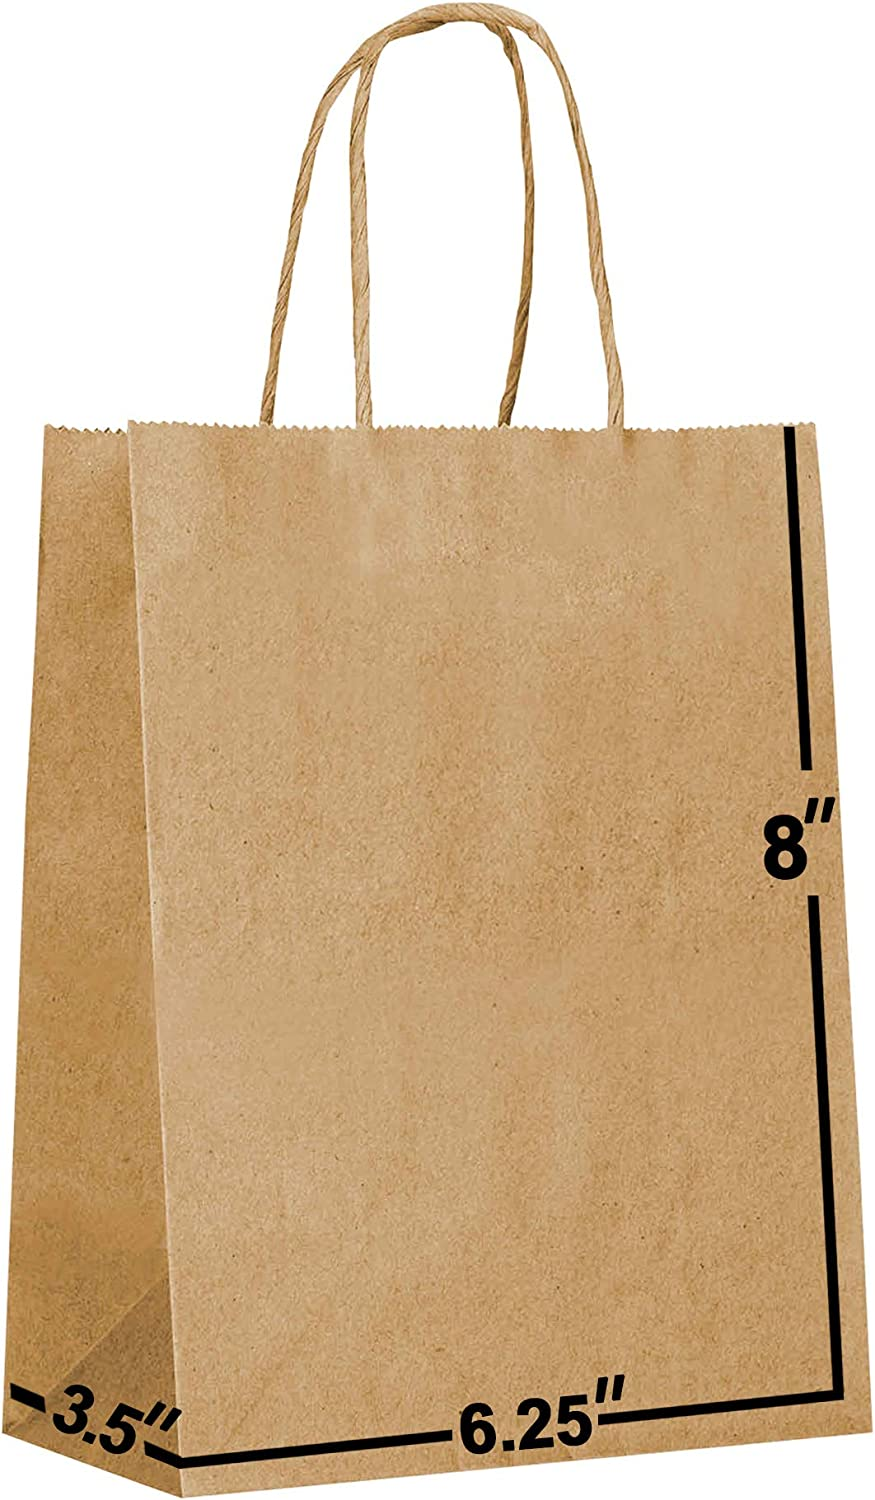 100 Packs-Brown Kraft Paper Gift Bags Bulk with Handles 6.25x3.5x8. Ideal for Shopping, Packaging, Retail, Party, Craft, Gifts, Wedding, Recycled, Business, Goody and Merchandise Bag